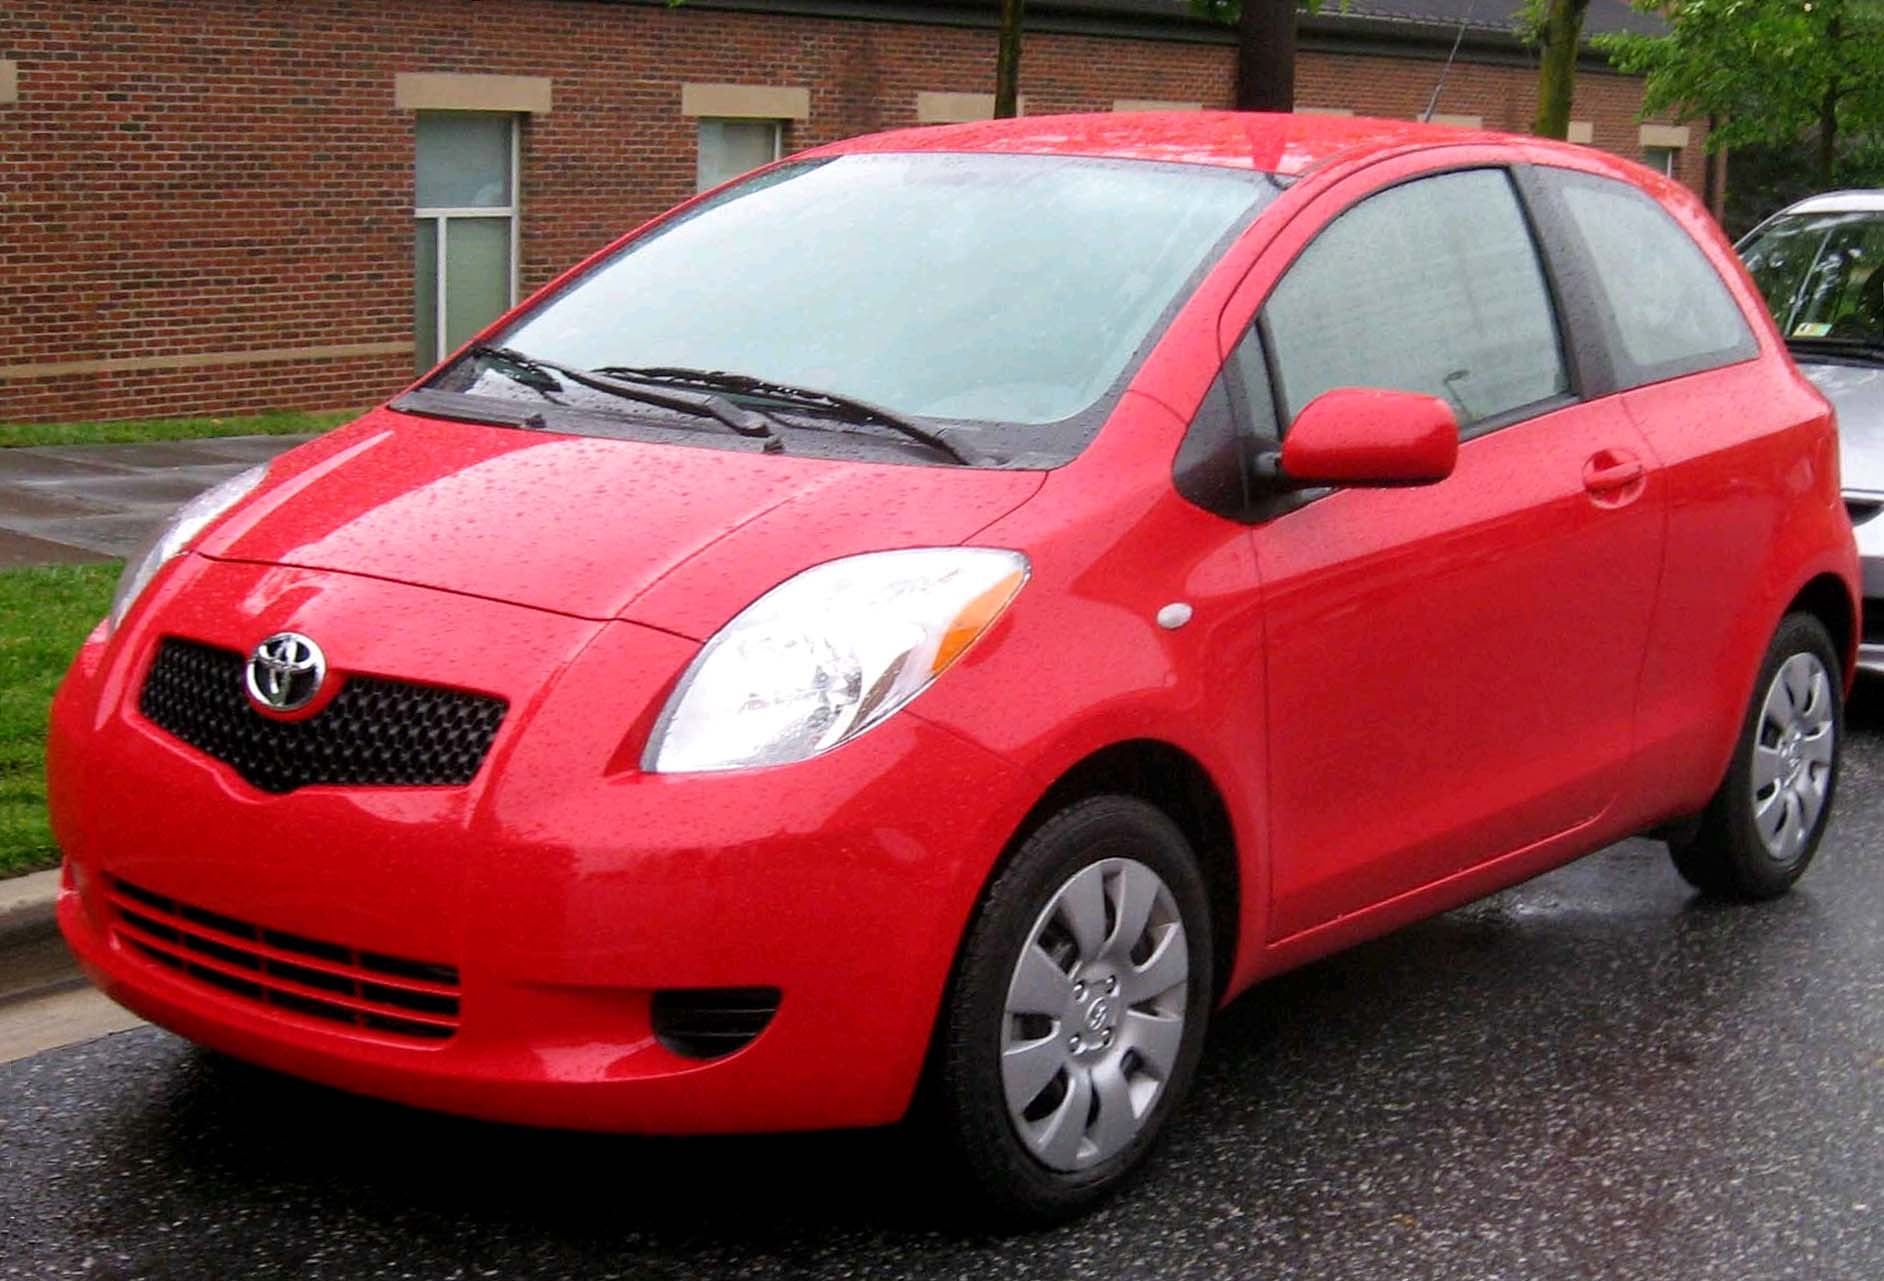 Toyota Yaris 3door 16